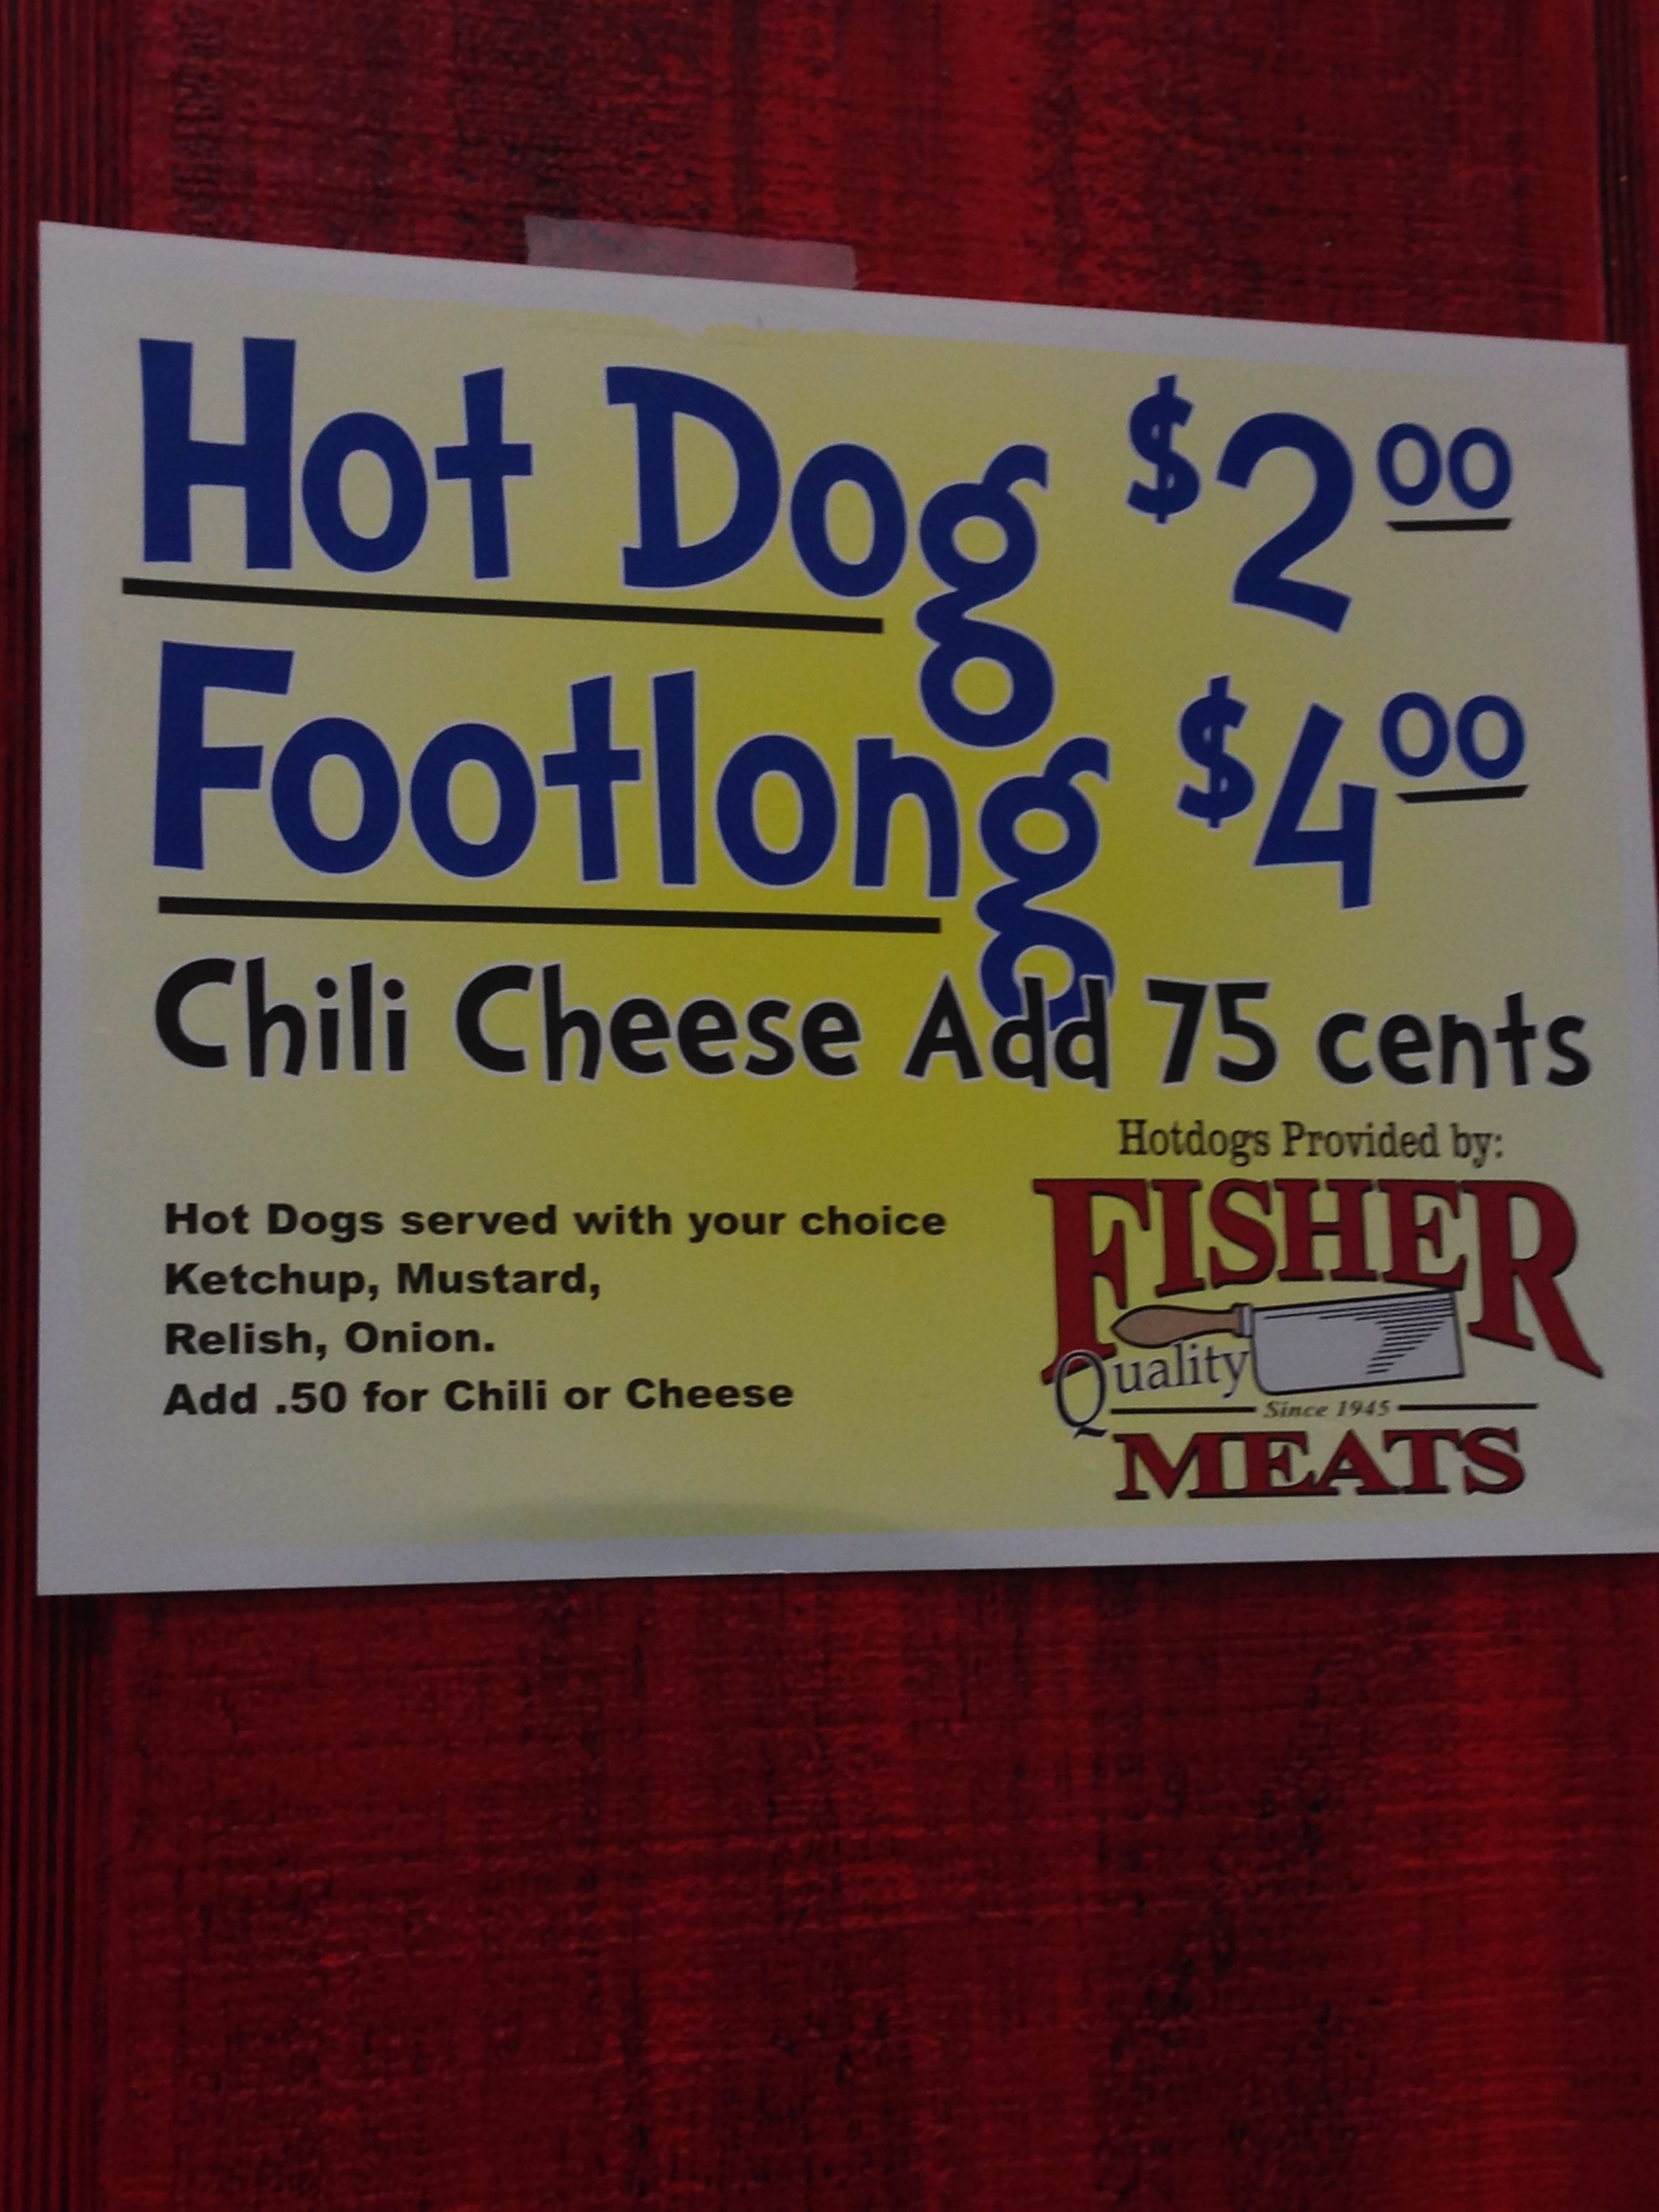 They serve Hot Dogs from Fisher Meats